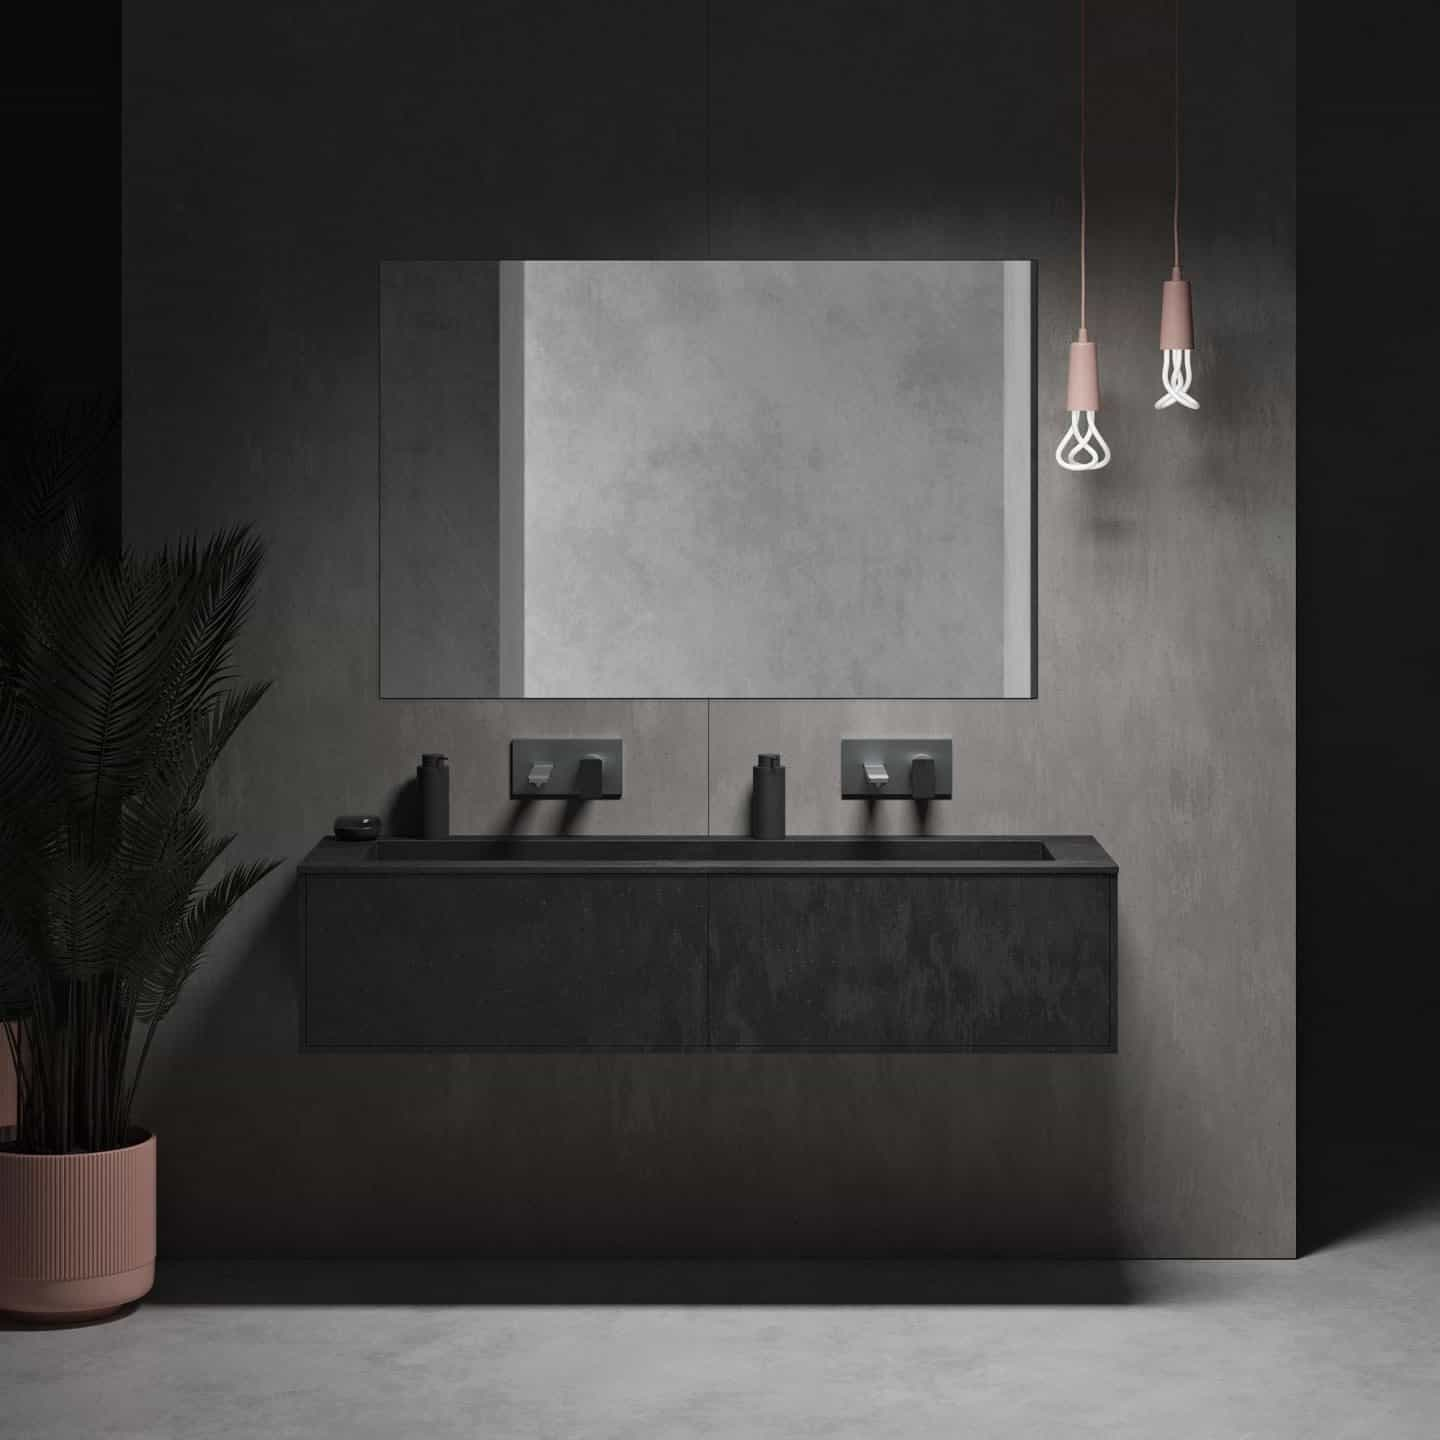 New Coloured Corian Bathroom Collection from Riluxa. Double wallhung corian bathroom basin with mirror over.